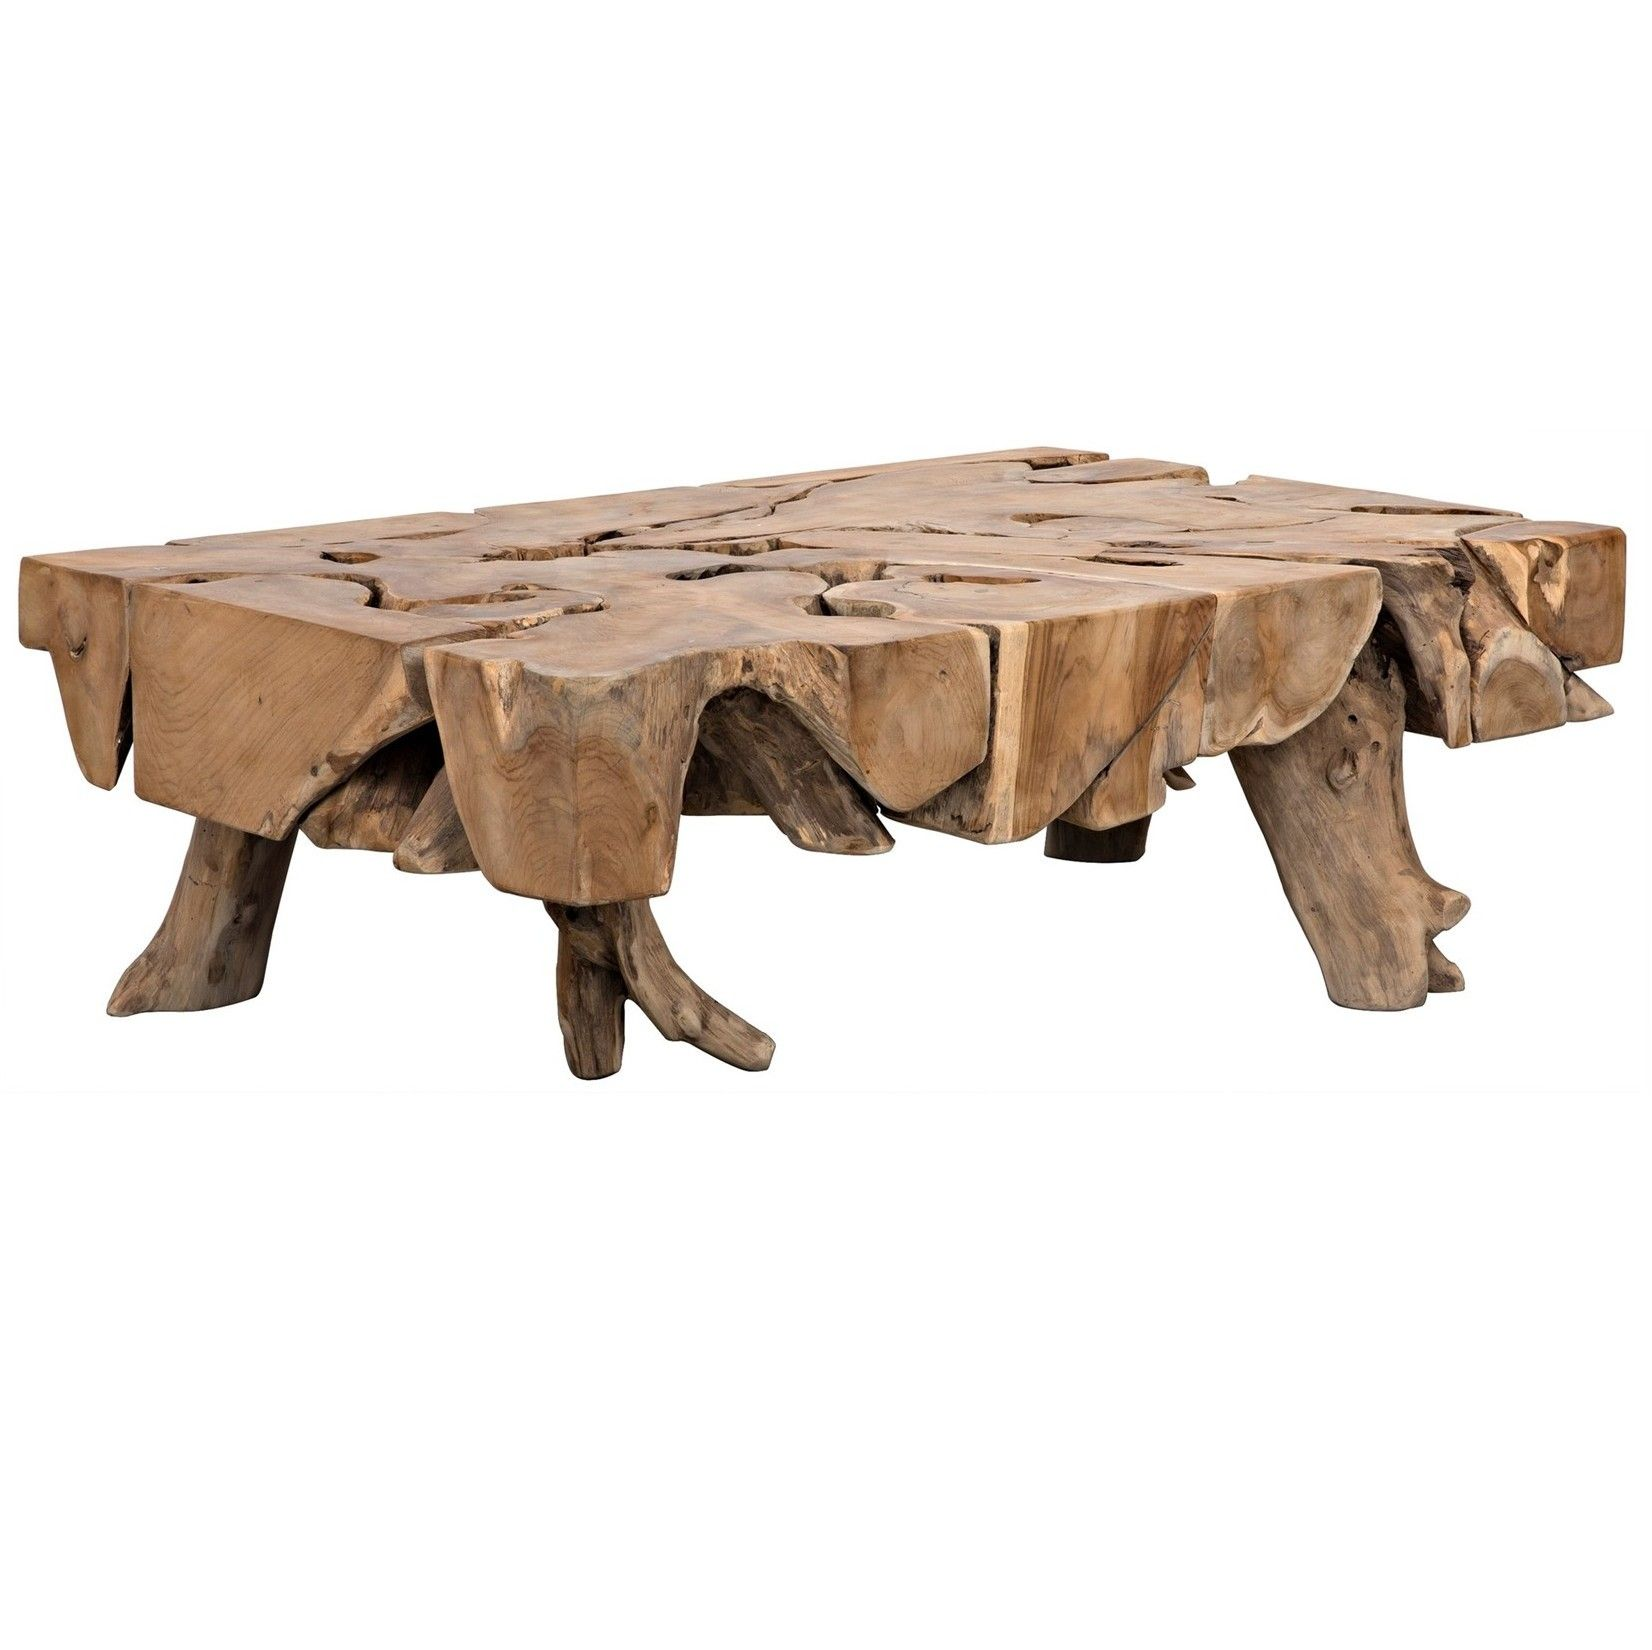 The Teak Root Coffee Table by Noir emphasizes natural ...